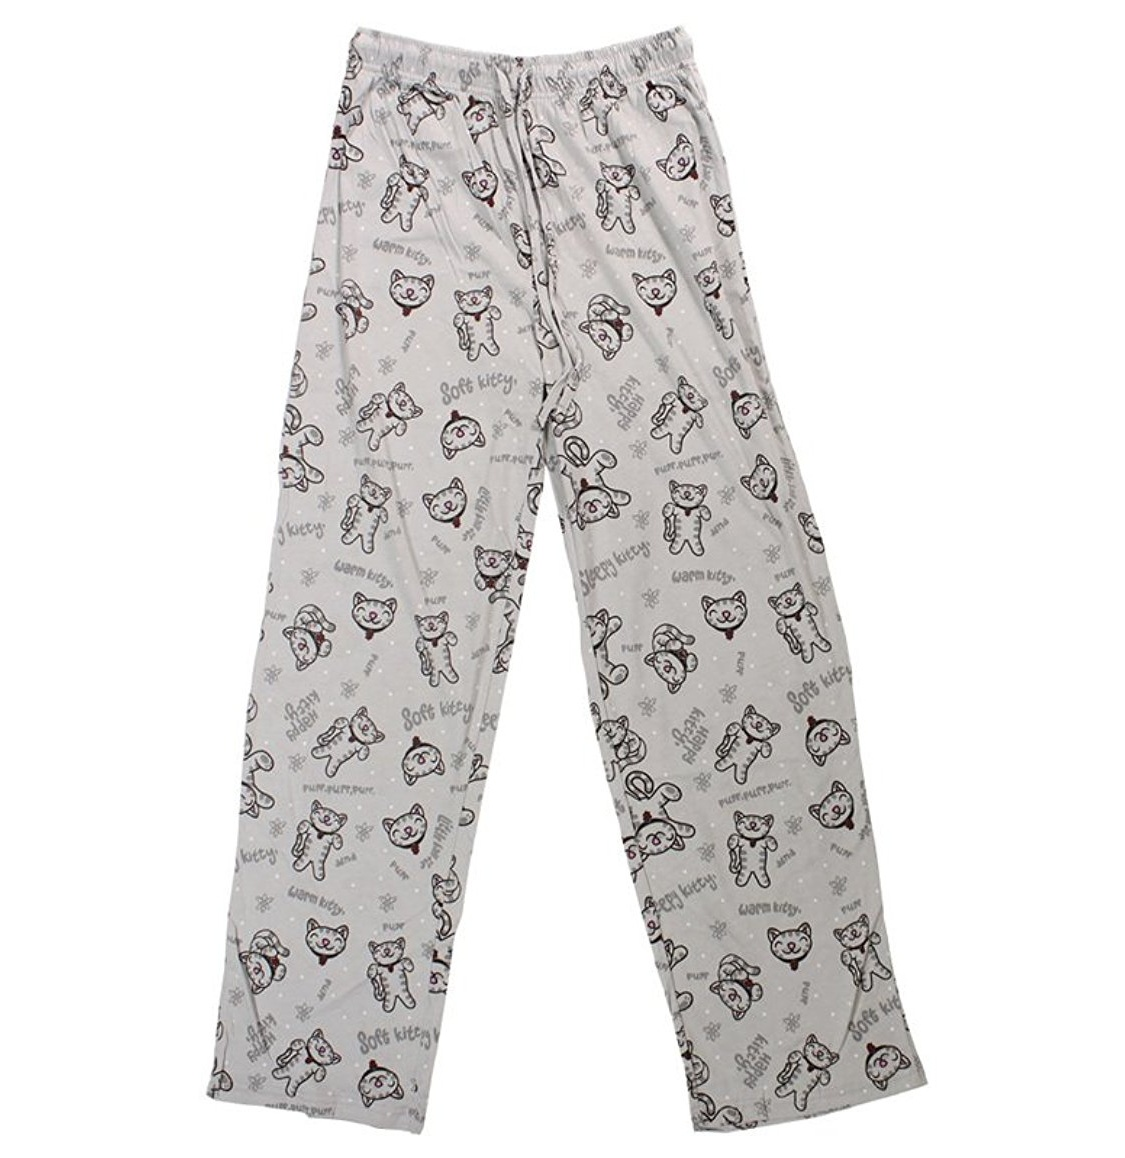 The Big Bang Theory Soft Kitty Leggings